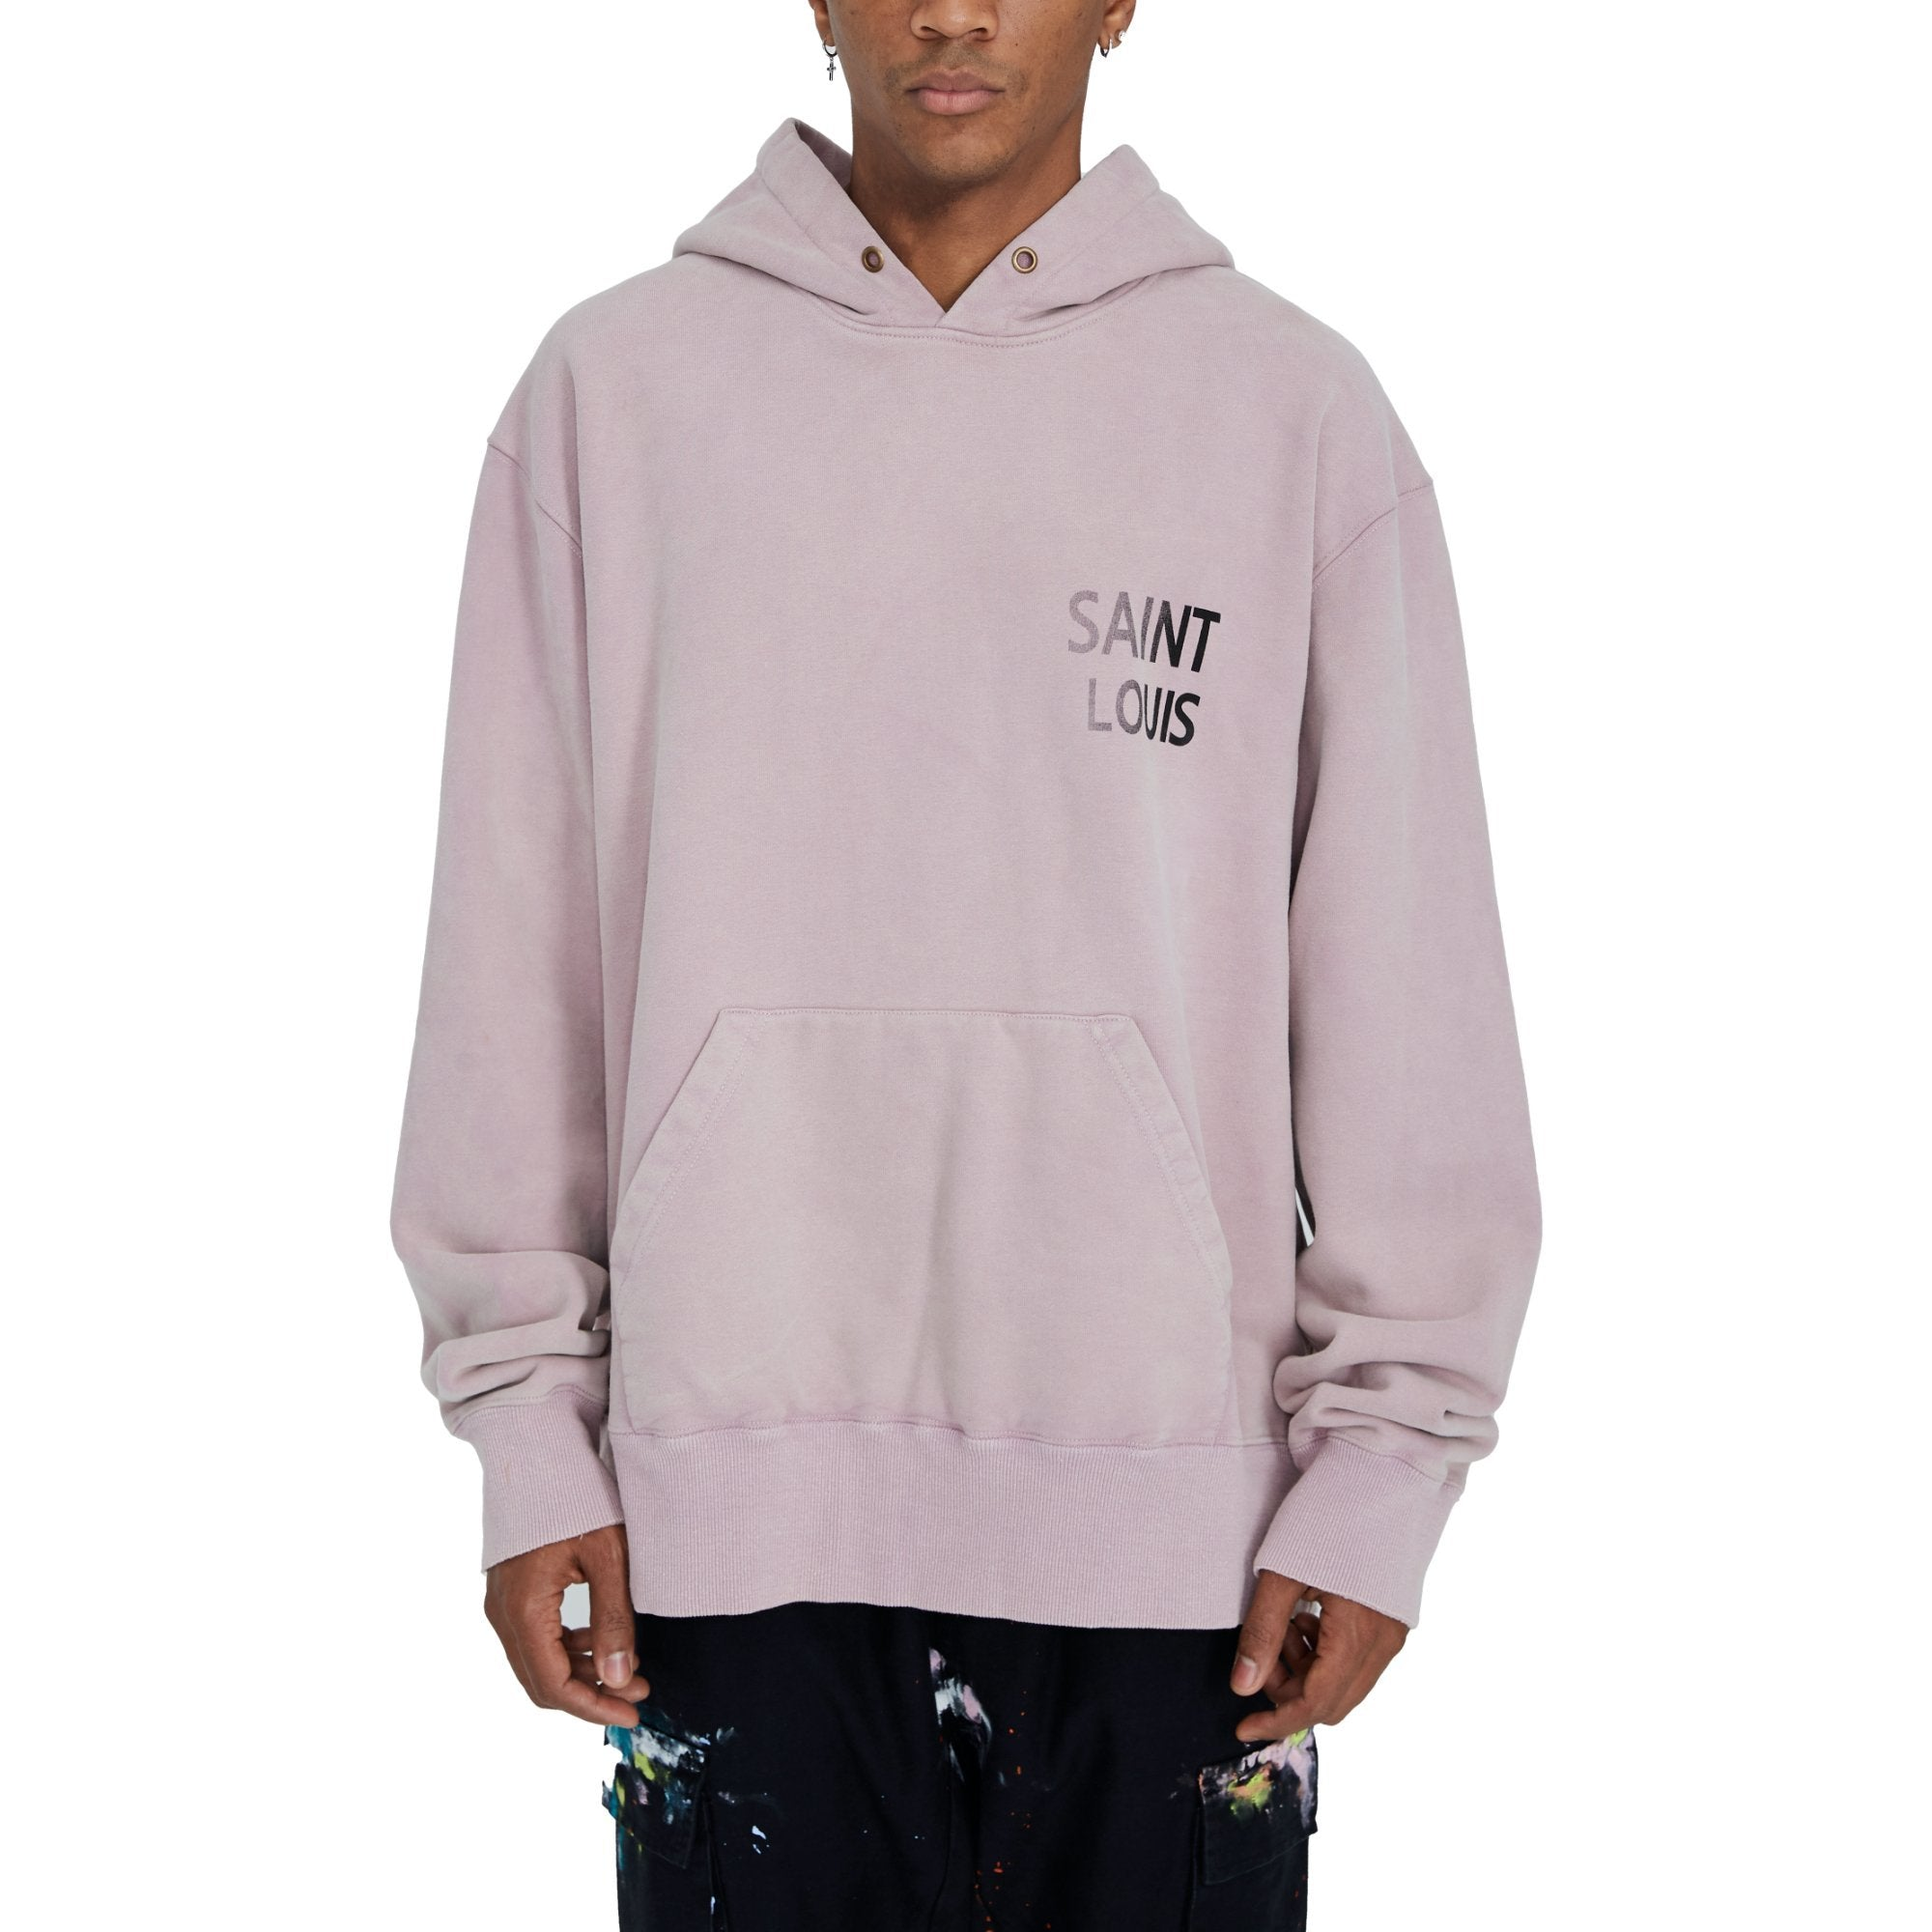 SAINT LOUIS Vintage Pink Object Dyded Hoodie | MADA IN CHINA